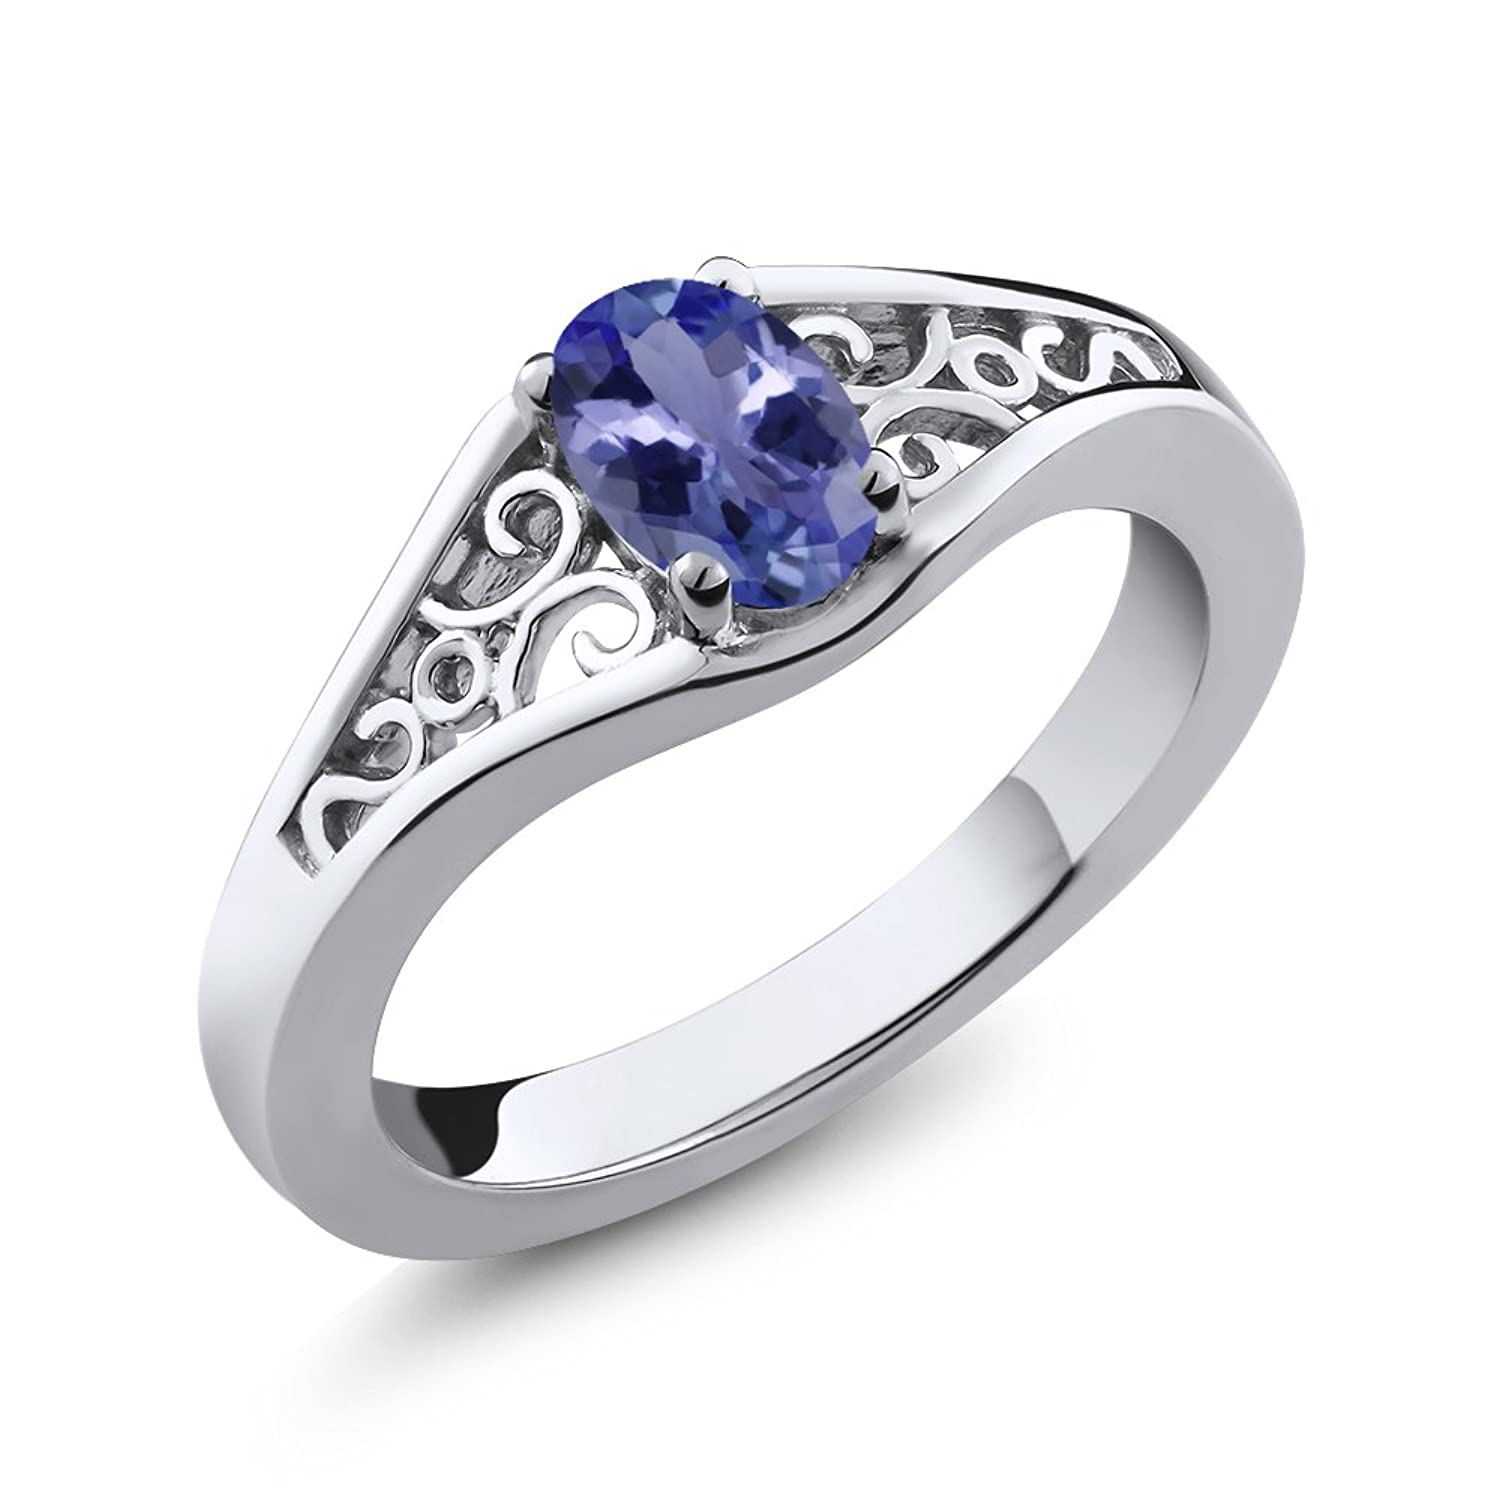 Sterling Silver Genuine Tanzanite Women's Ring (1/2 cttw, 6X4MM Oval, Available in size 5, 6, 7, 8, 9)